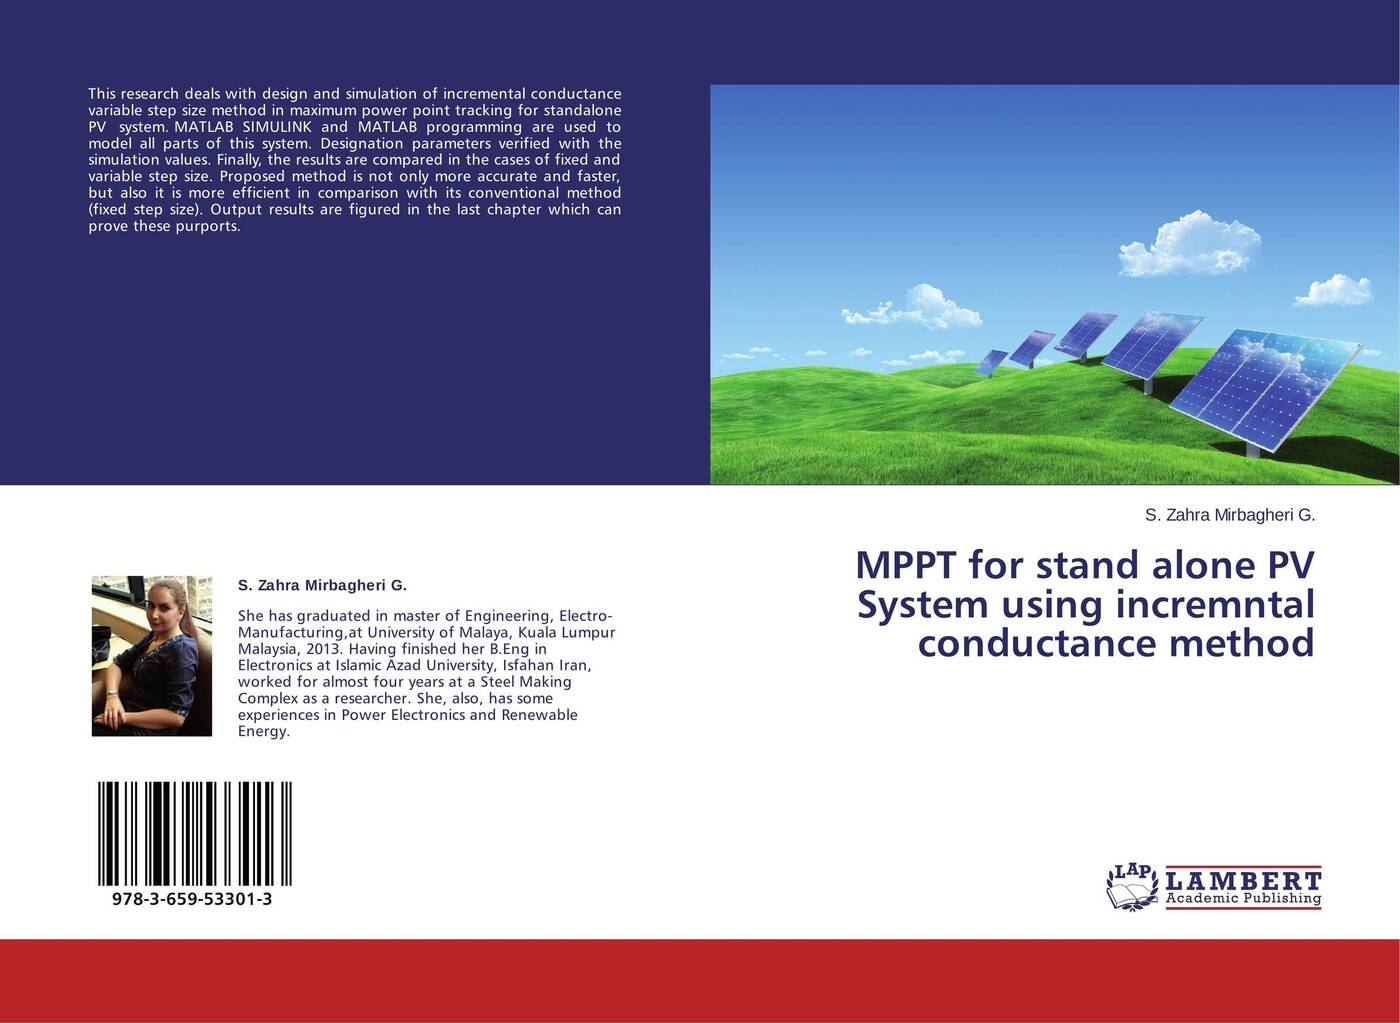 S. Zahra Mirbagheri G. MPPT for stand alone PV System using incremntal conductance method mppt for stand alone pv system using incremntal conductance method